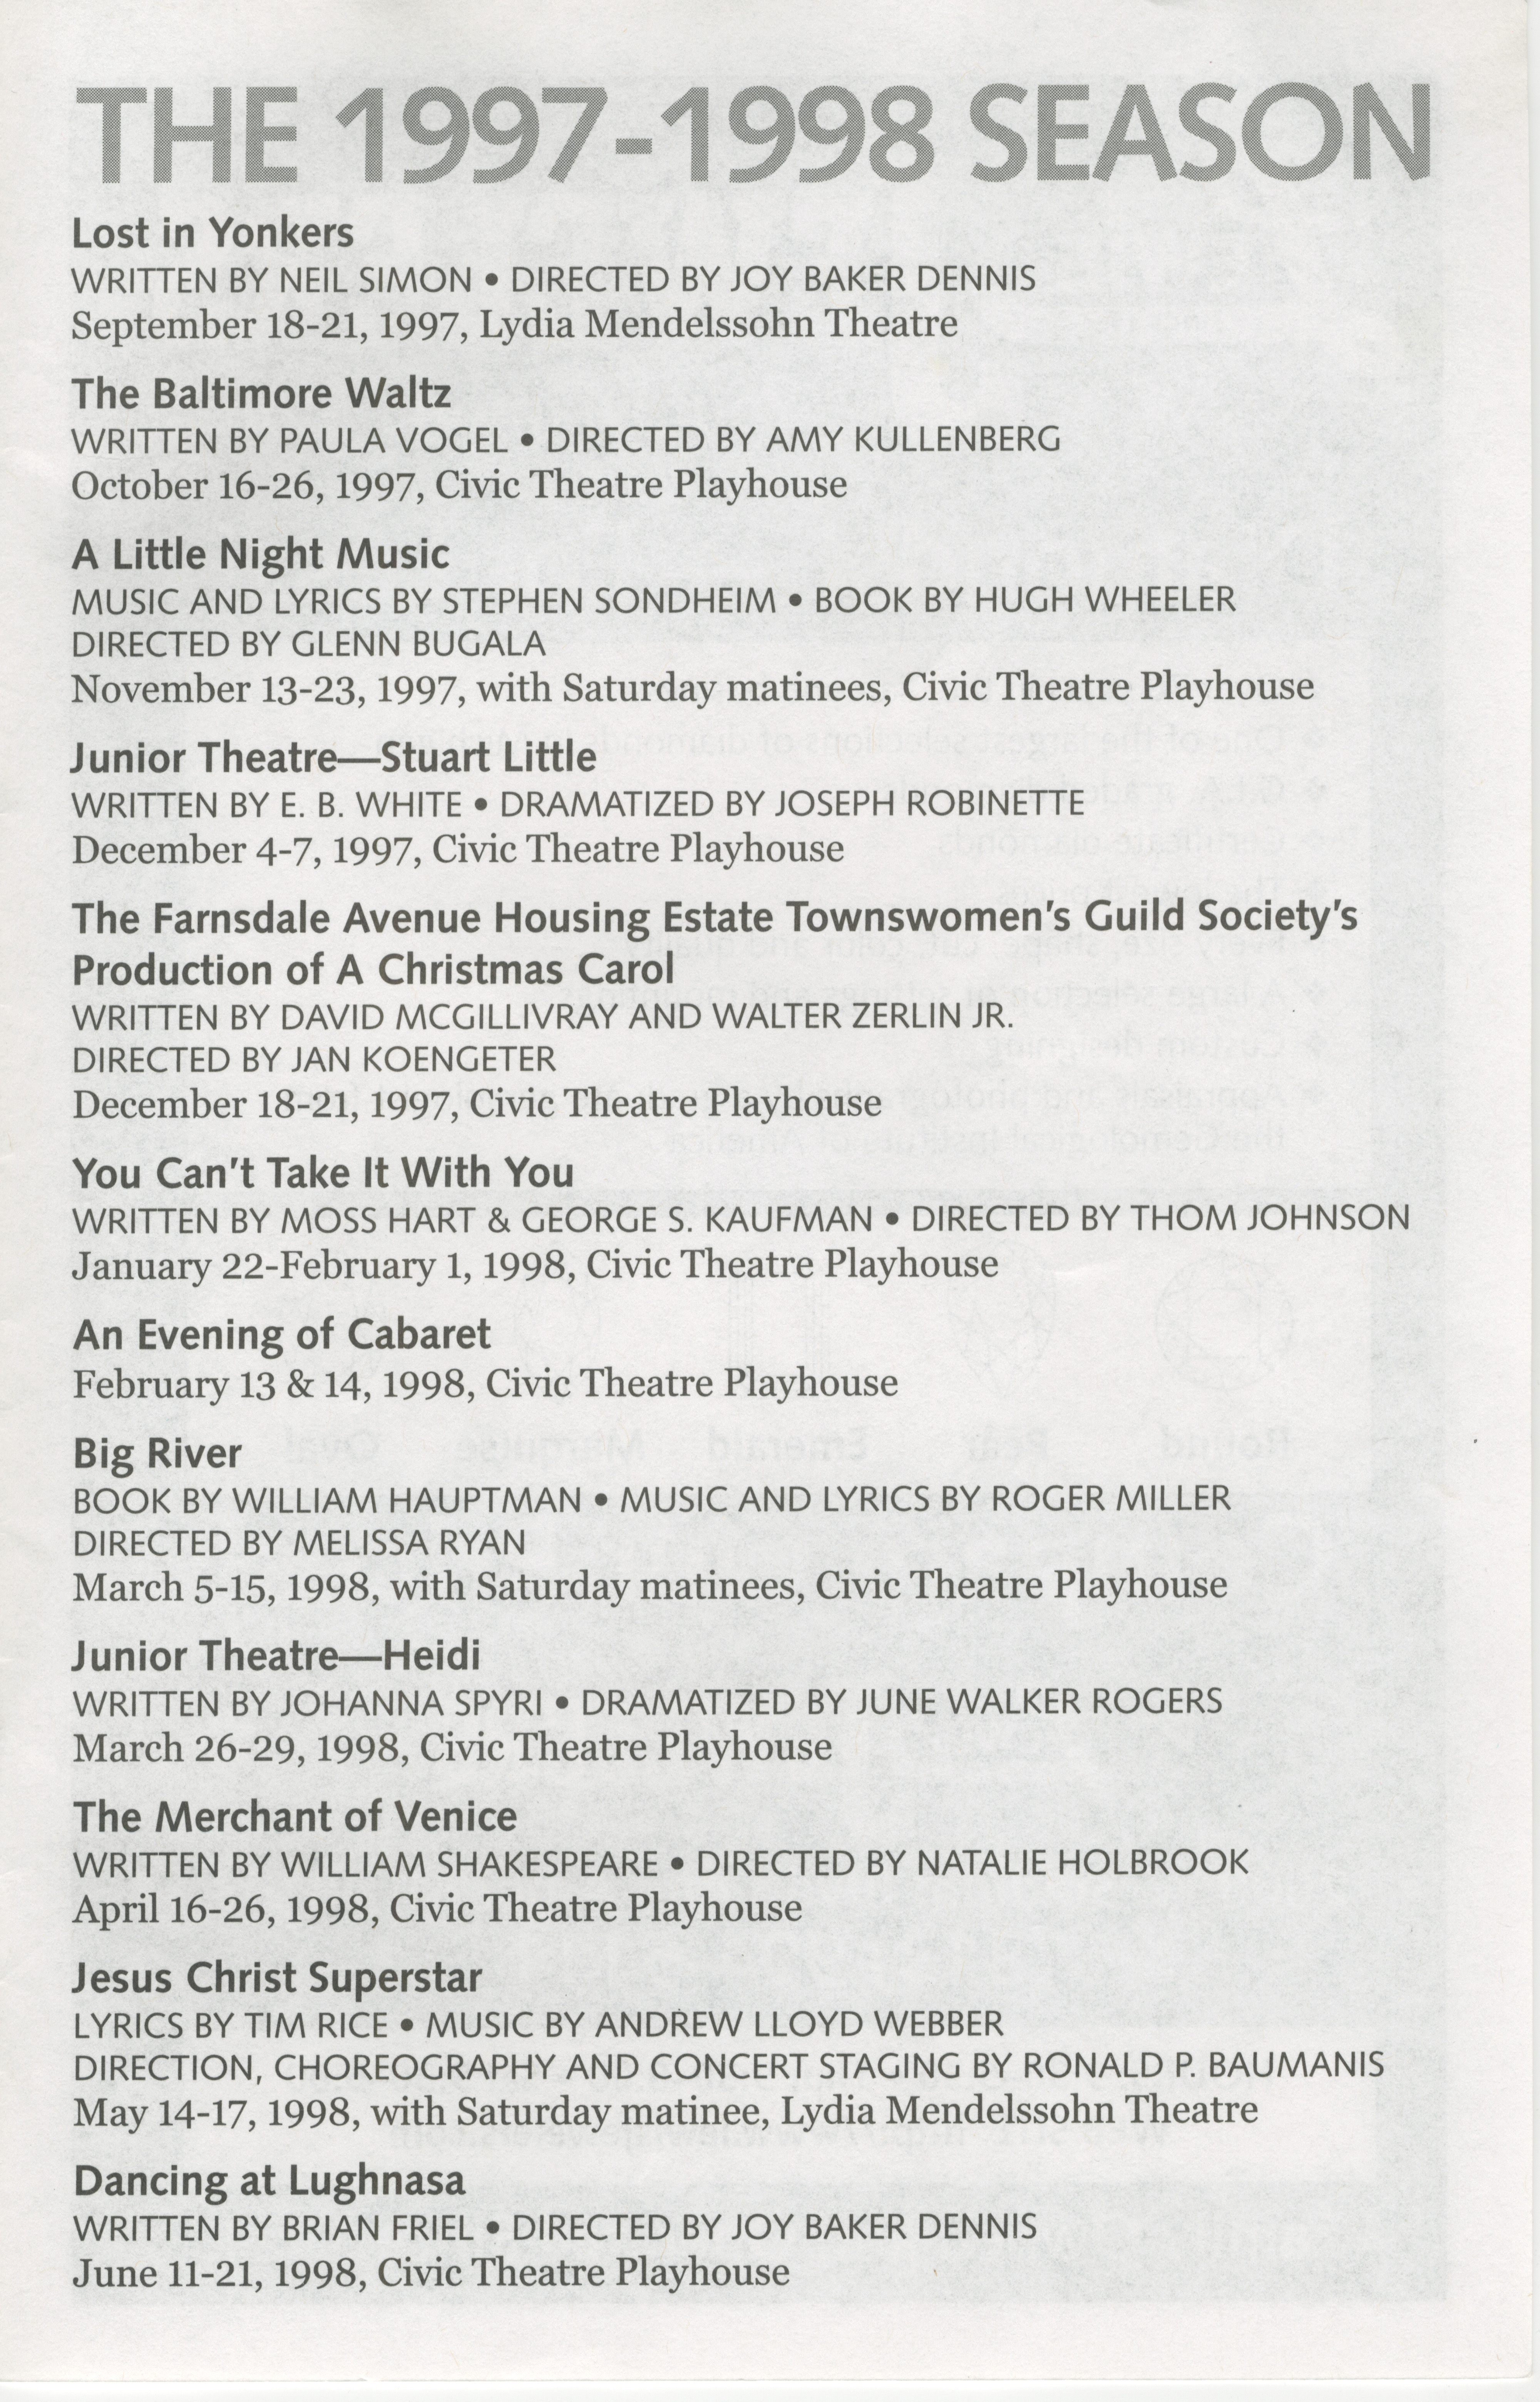 Ann Arbor Civic Theatre Program Lost In Yonkers September 18 1997